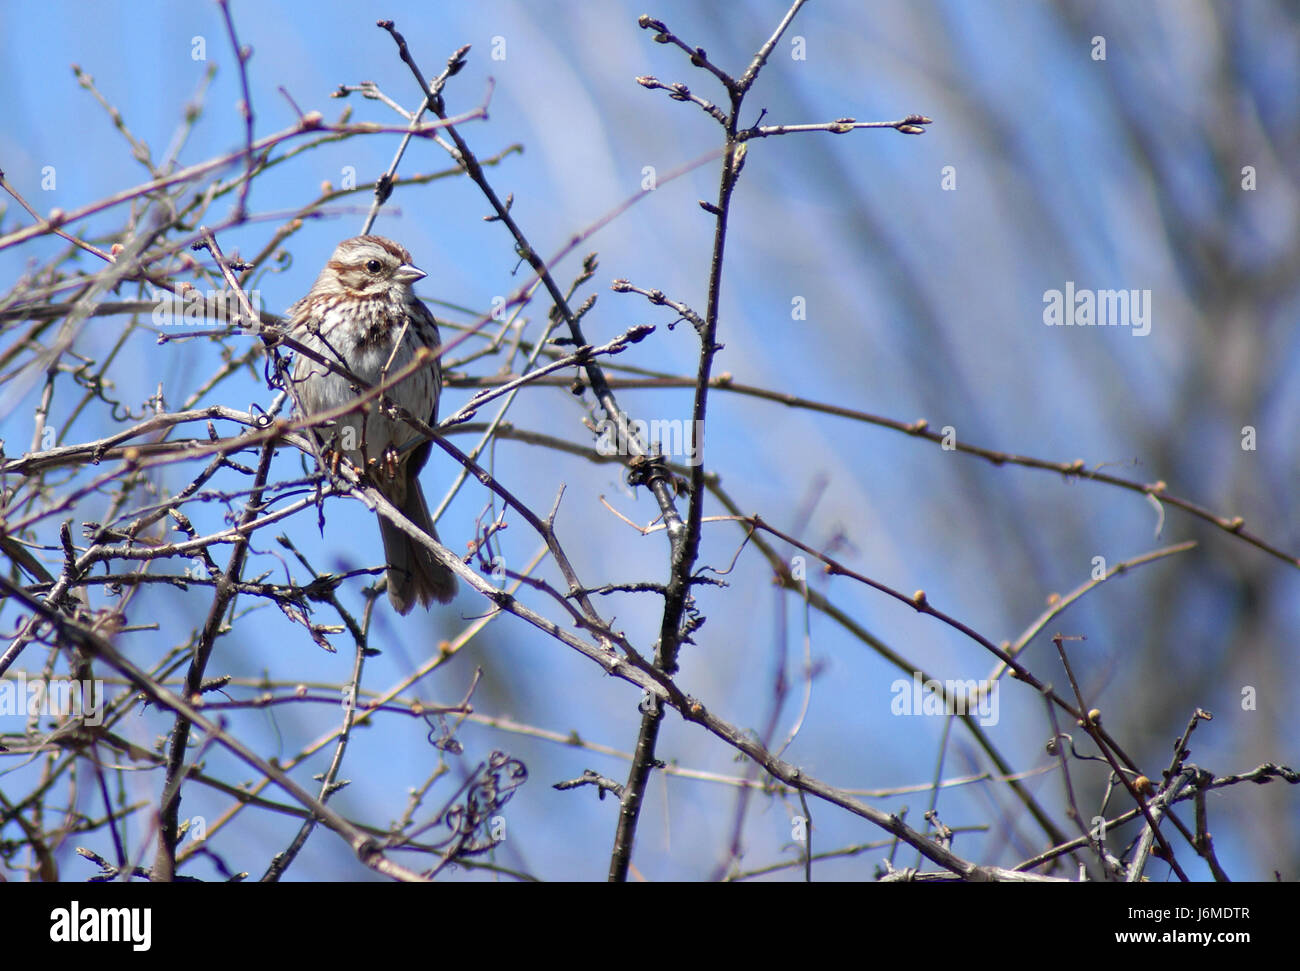 Page 2 Brown Little Cute Sparrow Wild Bird Tiny Small High Resolution Stock Photography And Images Alamy